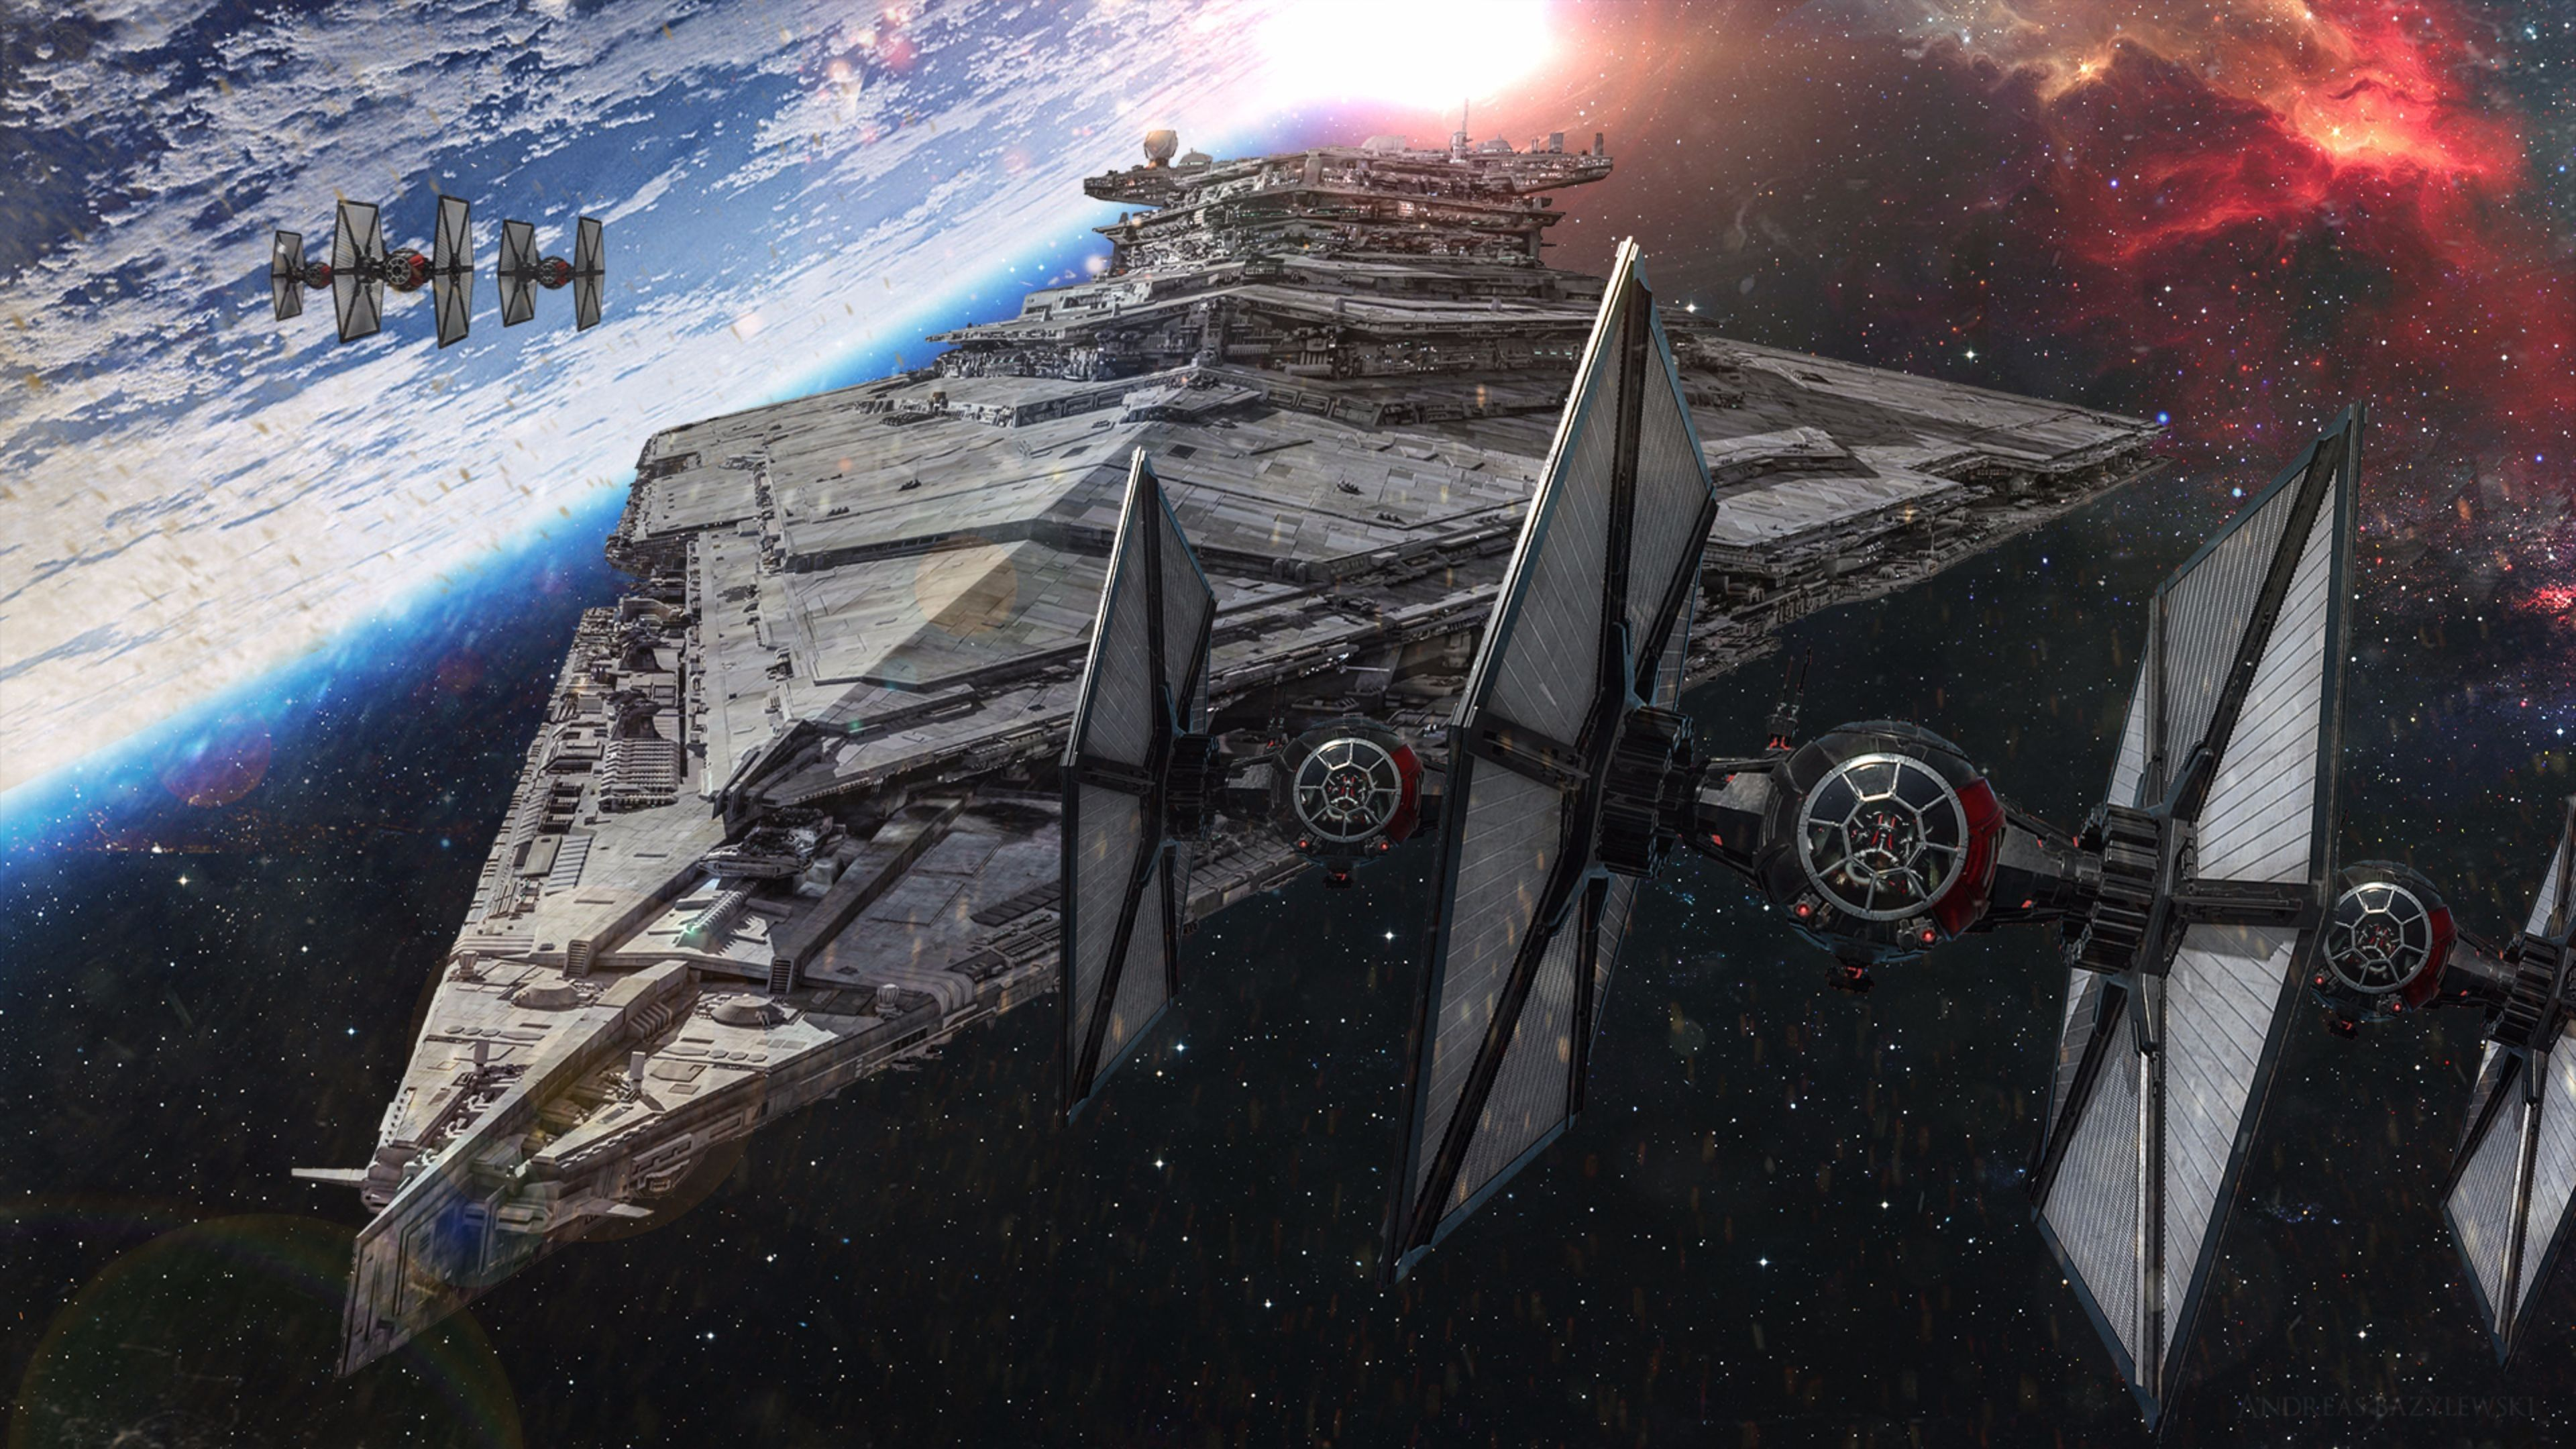 3840x2160 Star Wars 4K wallpaper ·① Download free awesome wallpapers for ...